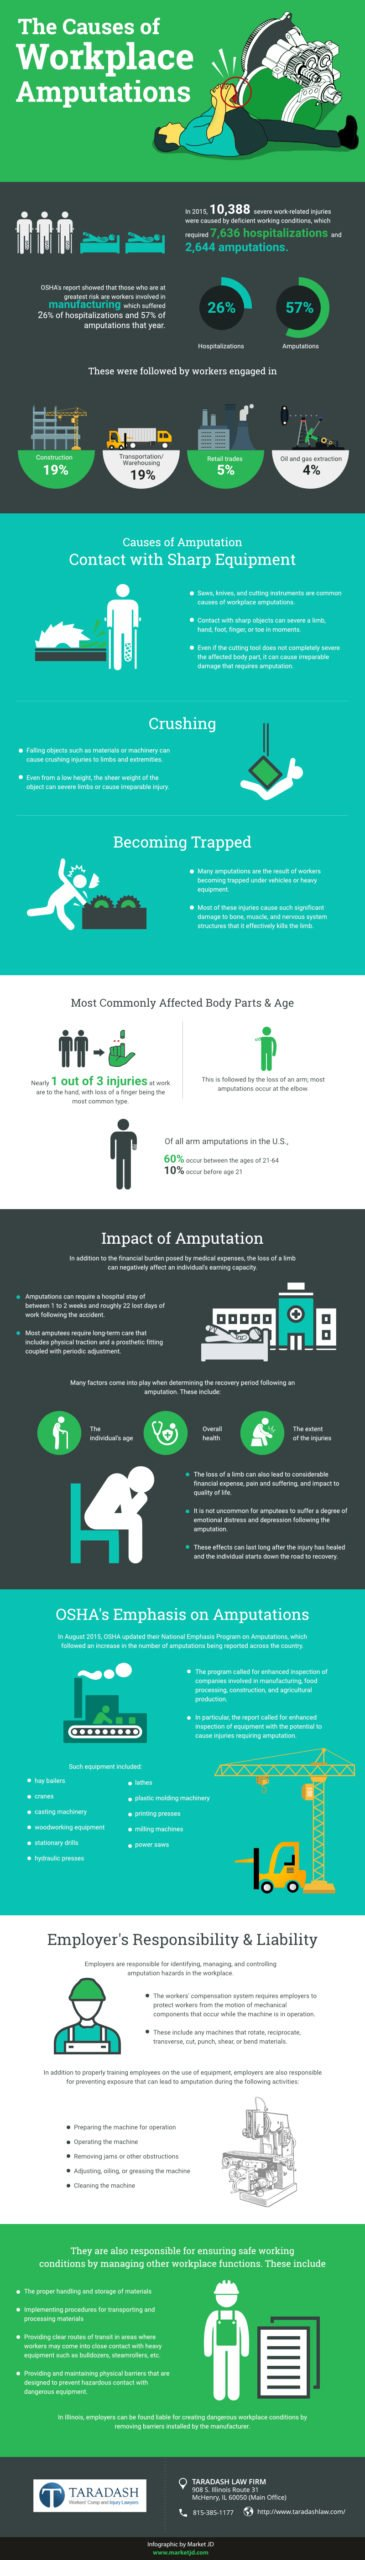 Infographic_The Causes of Workplace Amputations